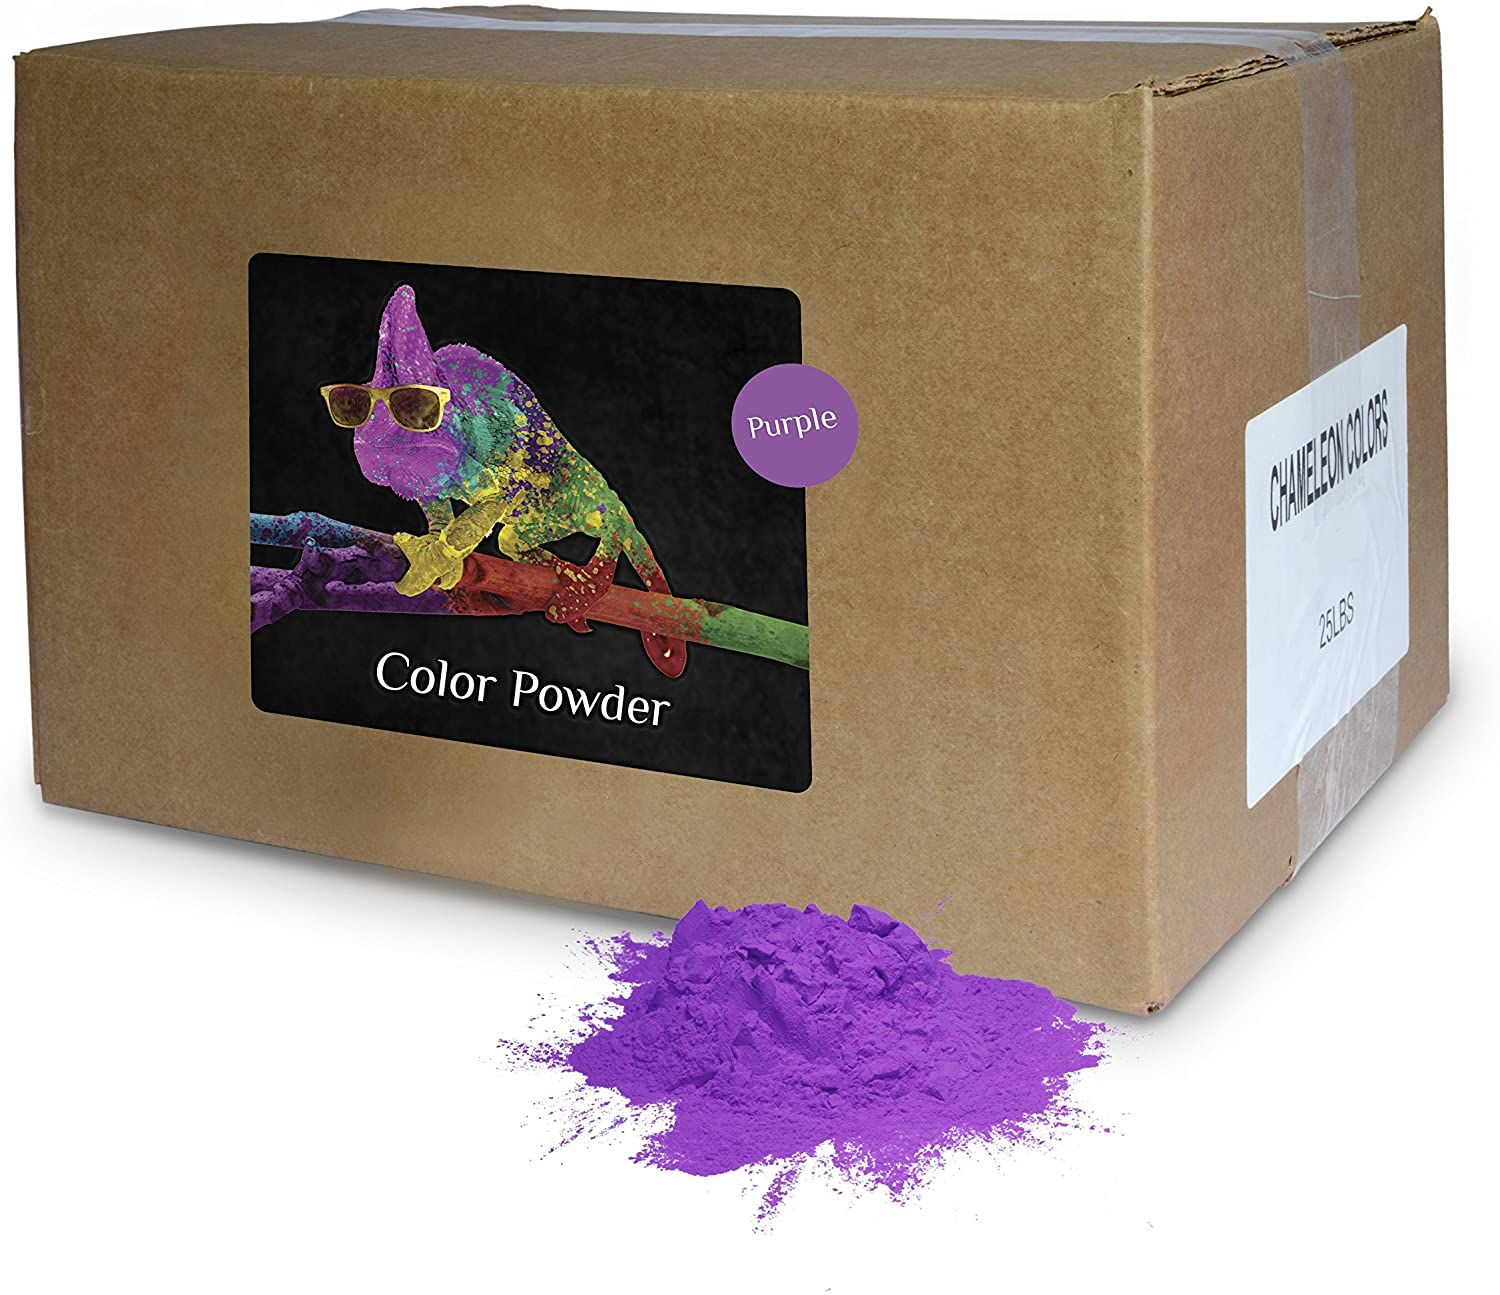 Holi Powder Bulk by Chameleon Colors - Purple - 25 lbs. Pure, Authentic Fun - Perfect for a Color Races, 5k, Festival, Party or Any Other Event You Want to Make Colorful.